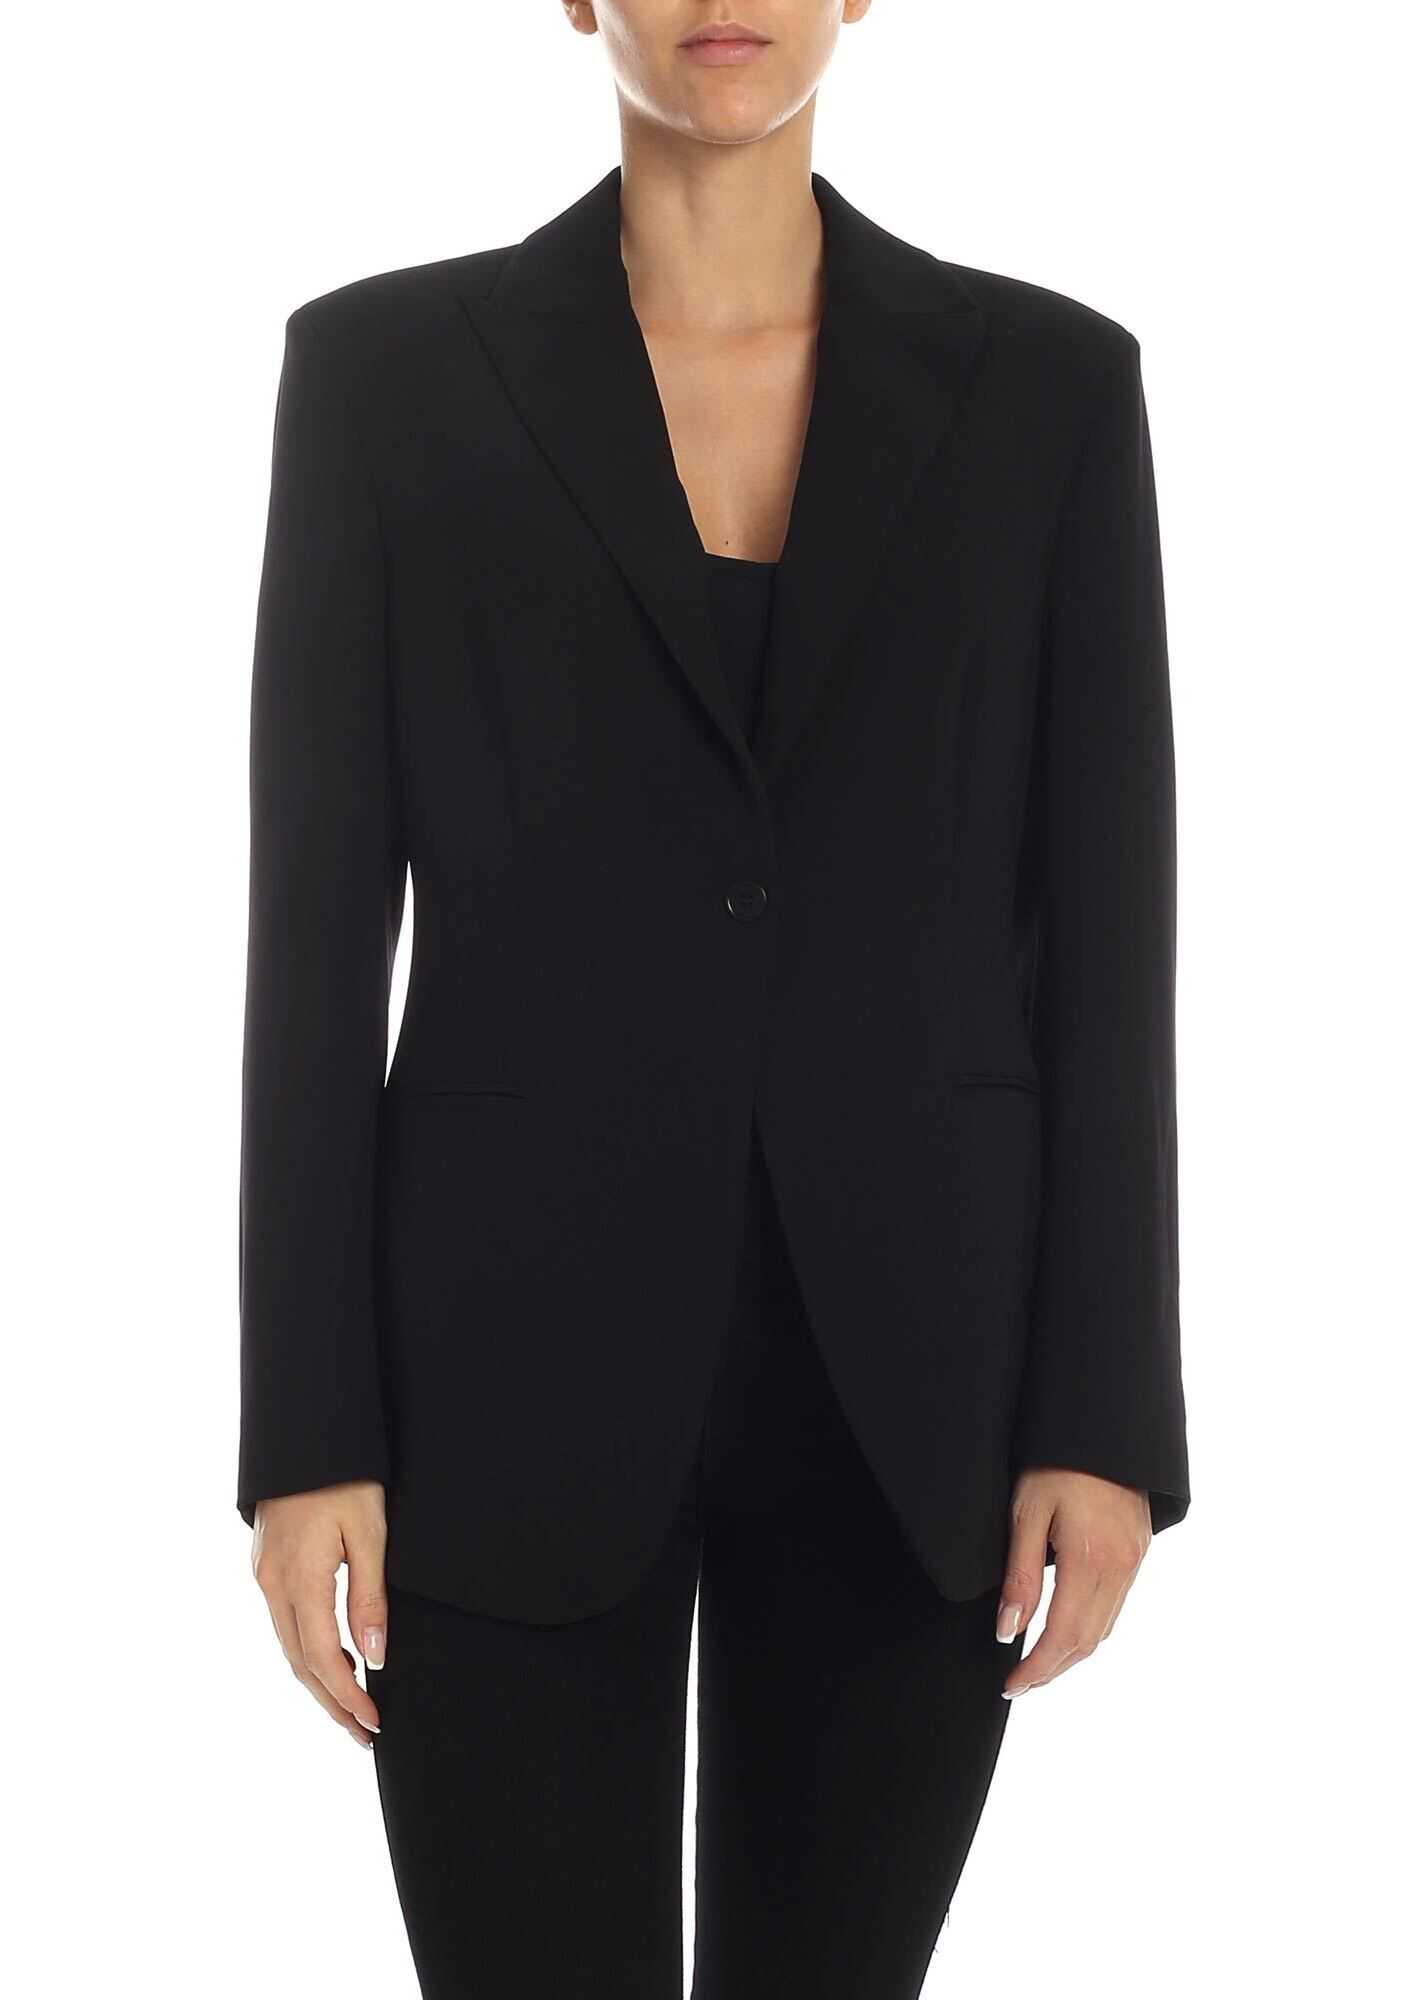 P.A.R.O.S.H. Single-Breasted Jacket In Black Cady Black